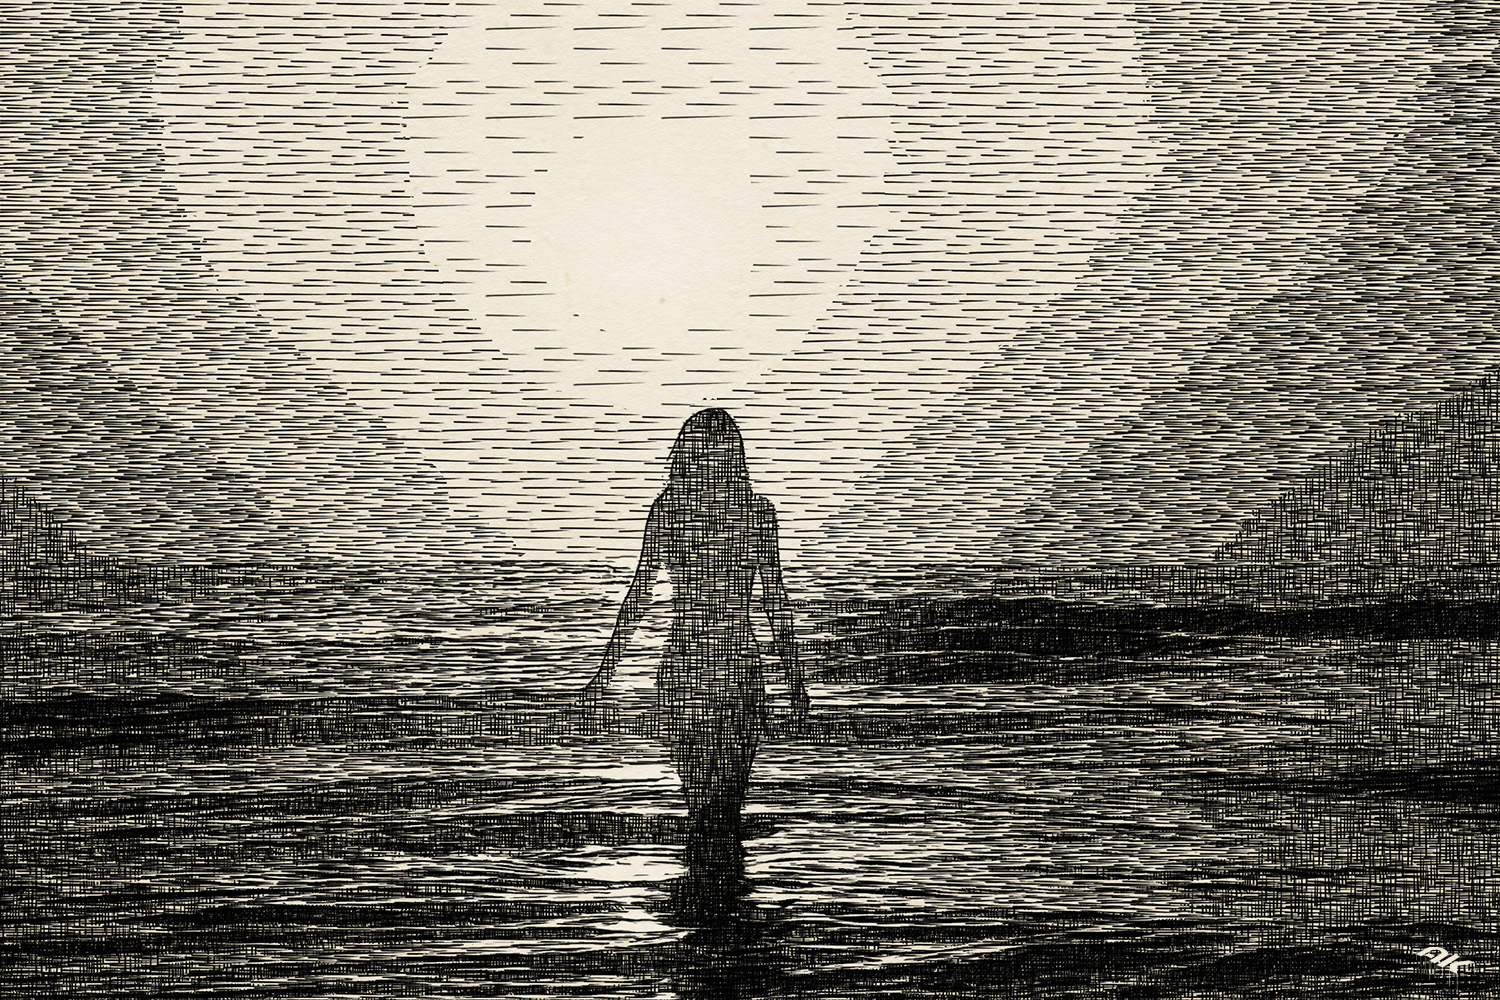 Silhouettes-Engraving-8-copyright-andrew-knutt